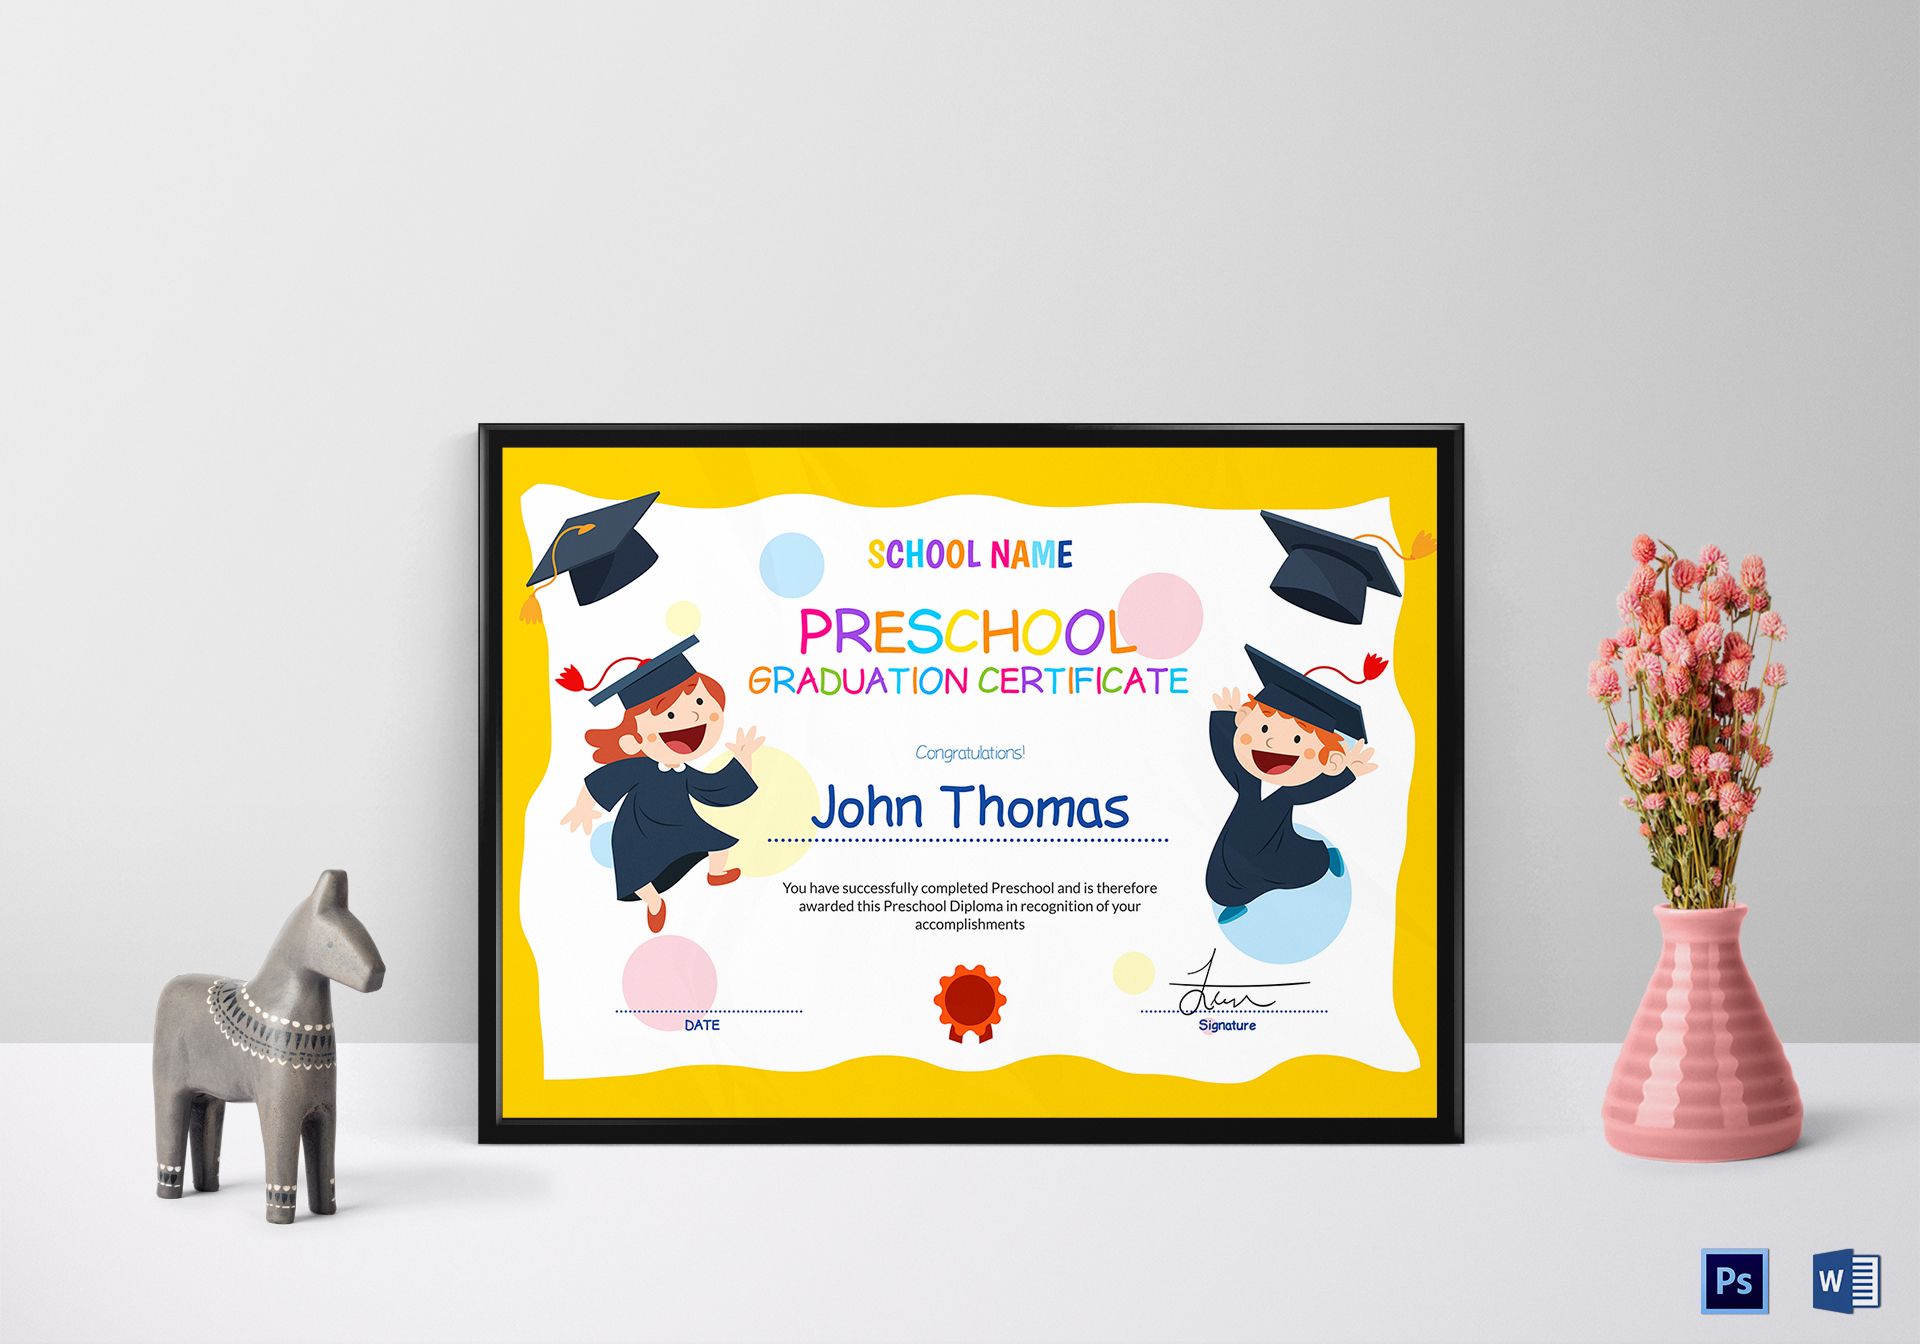 Graduation Certificate | Preschool Graduation Certificate Design Template In Psd Word